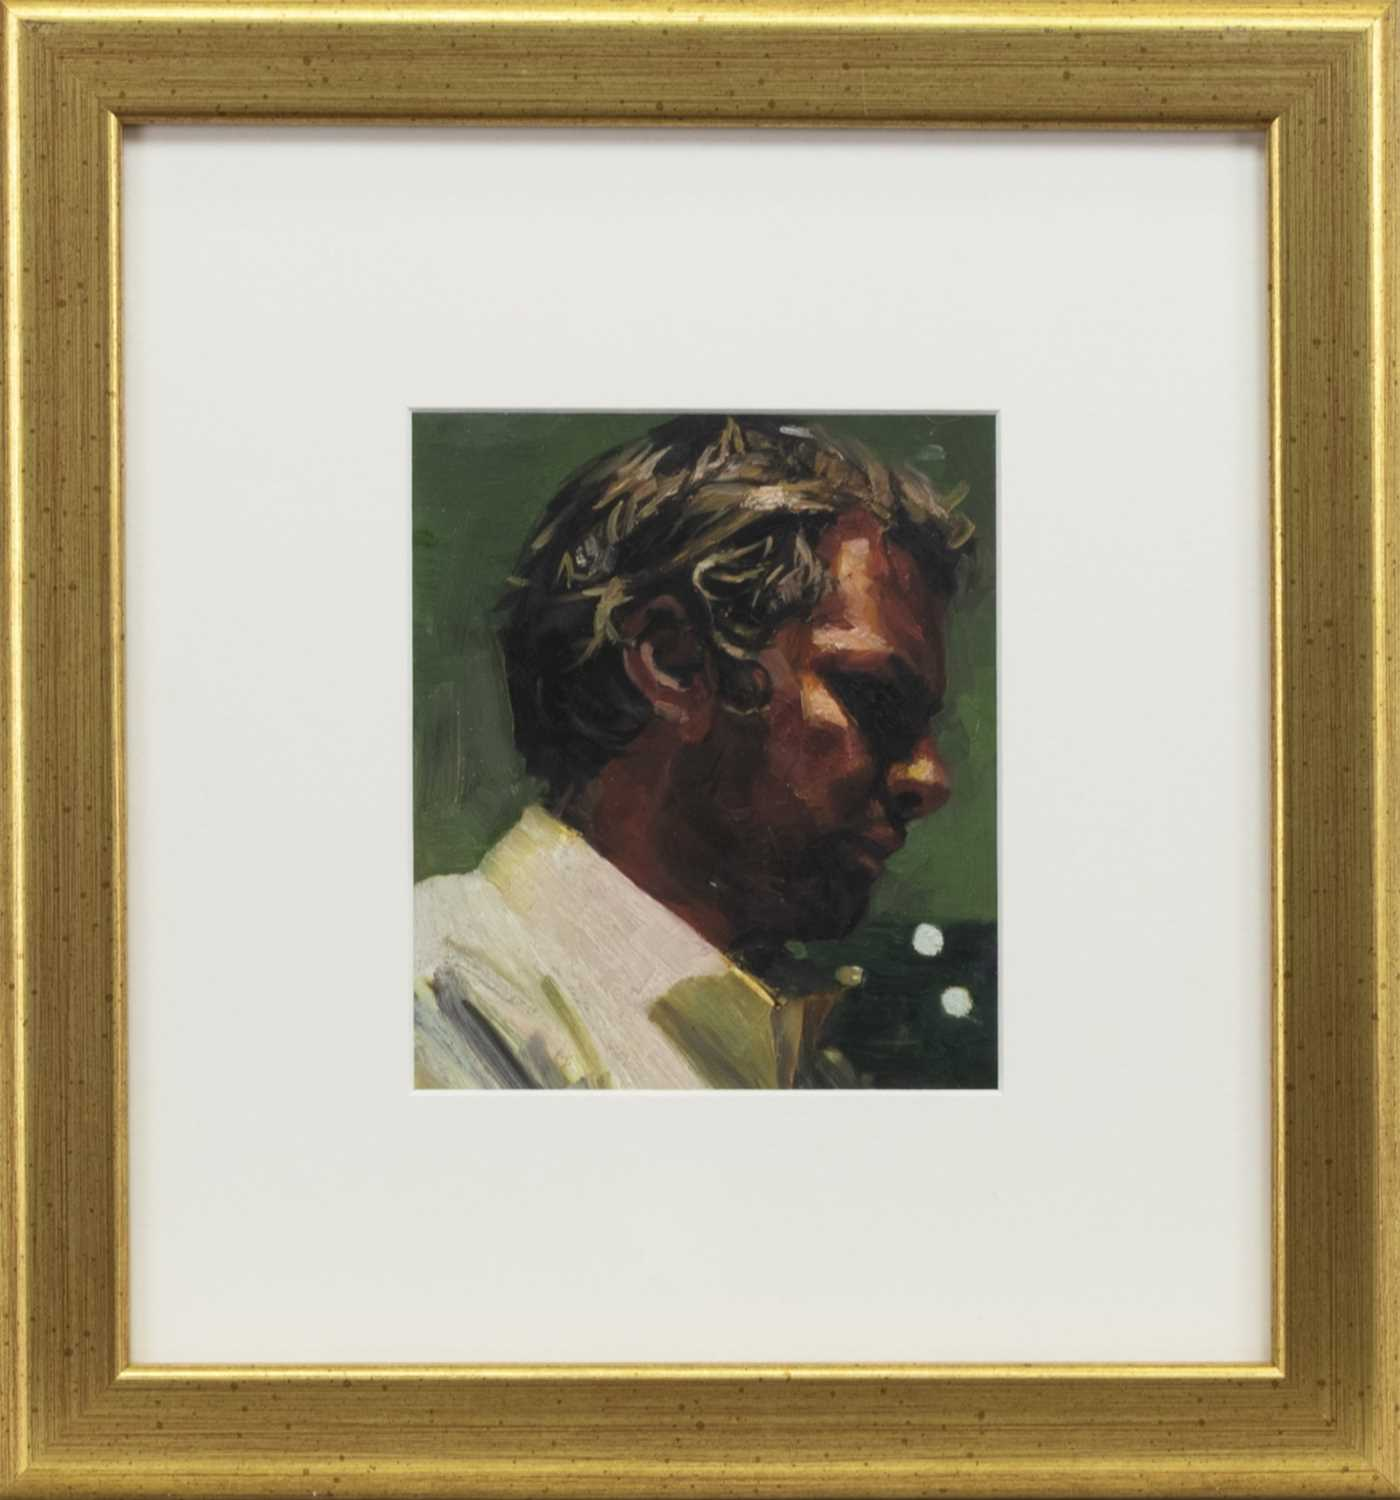 Lot 572 - A CONTEMPLATIVE MOMENT, AN OIL BY BEN DAVIS JENKINS